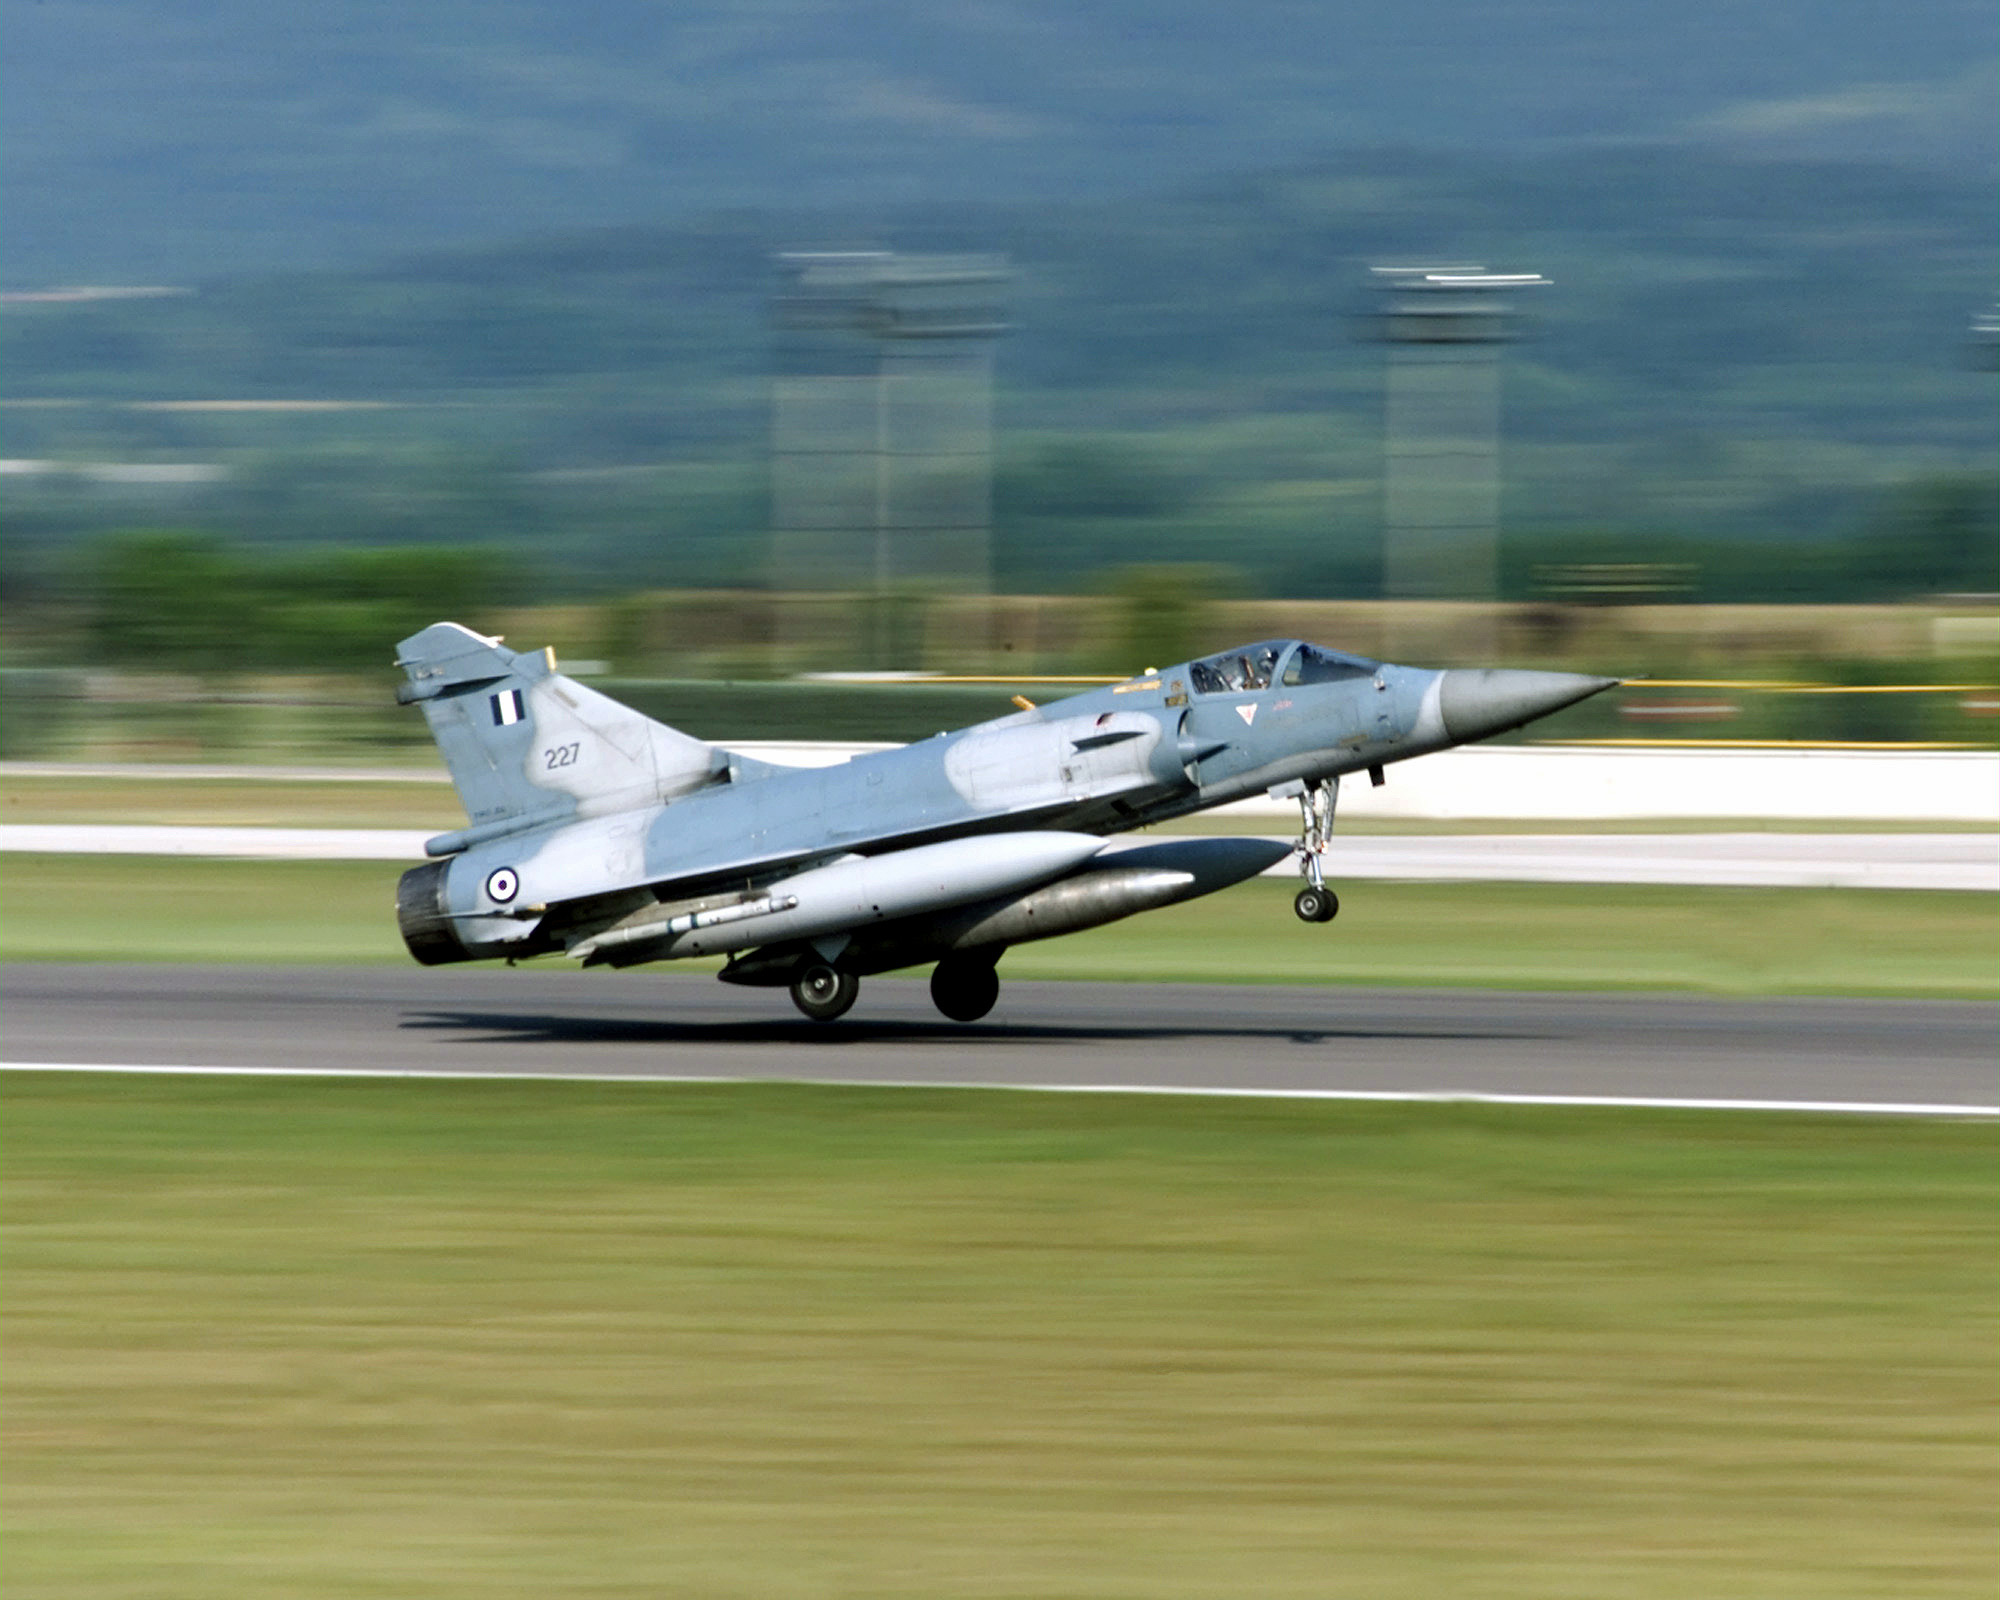 Mirage_2000_of_Hellenic_Air_Force